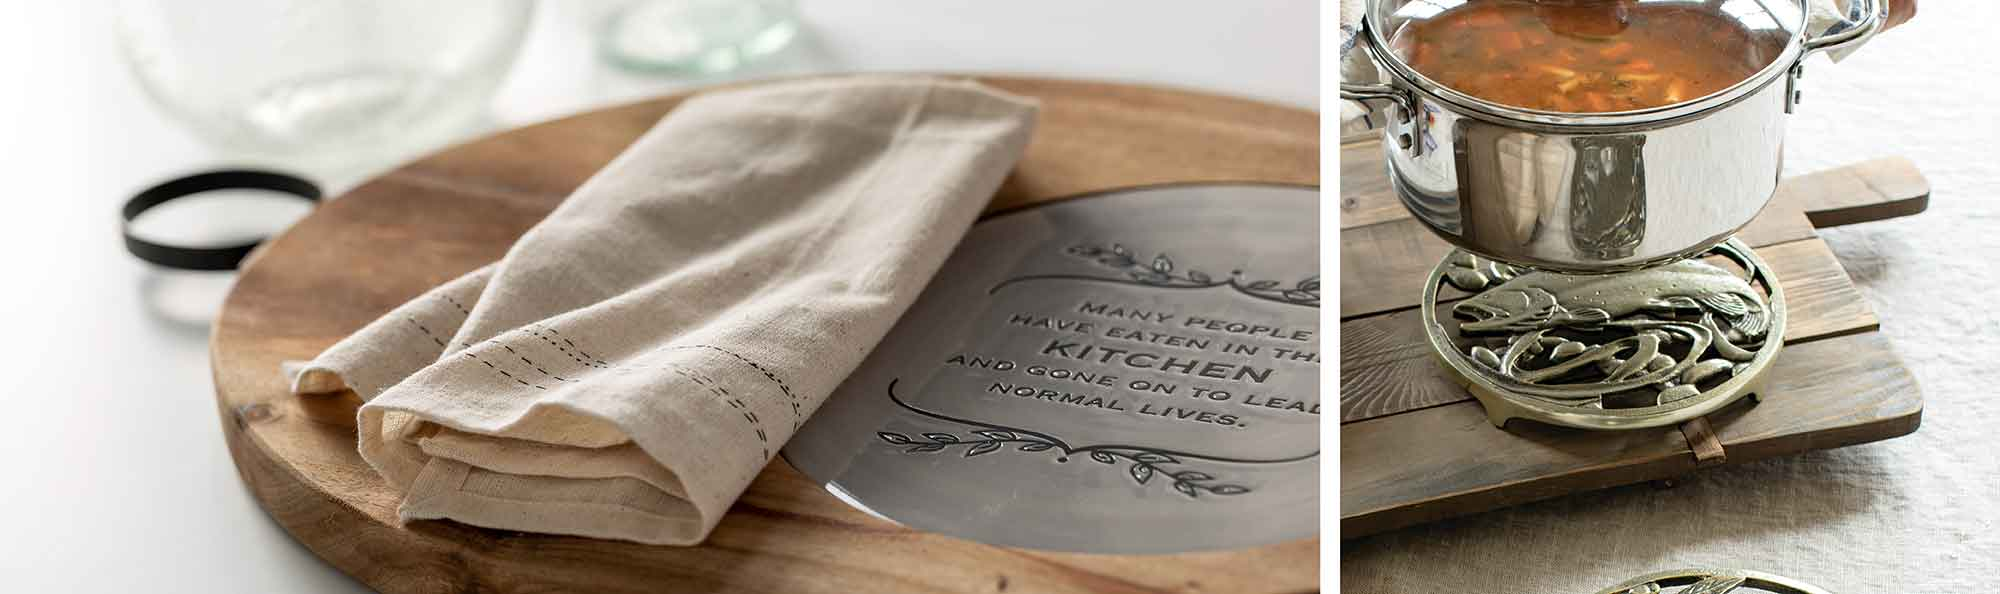 hot pan setting on a metal Trivets with a quote about the kitchen and another with design of a fish